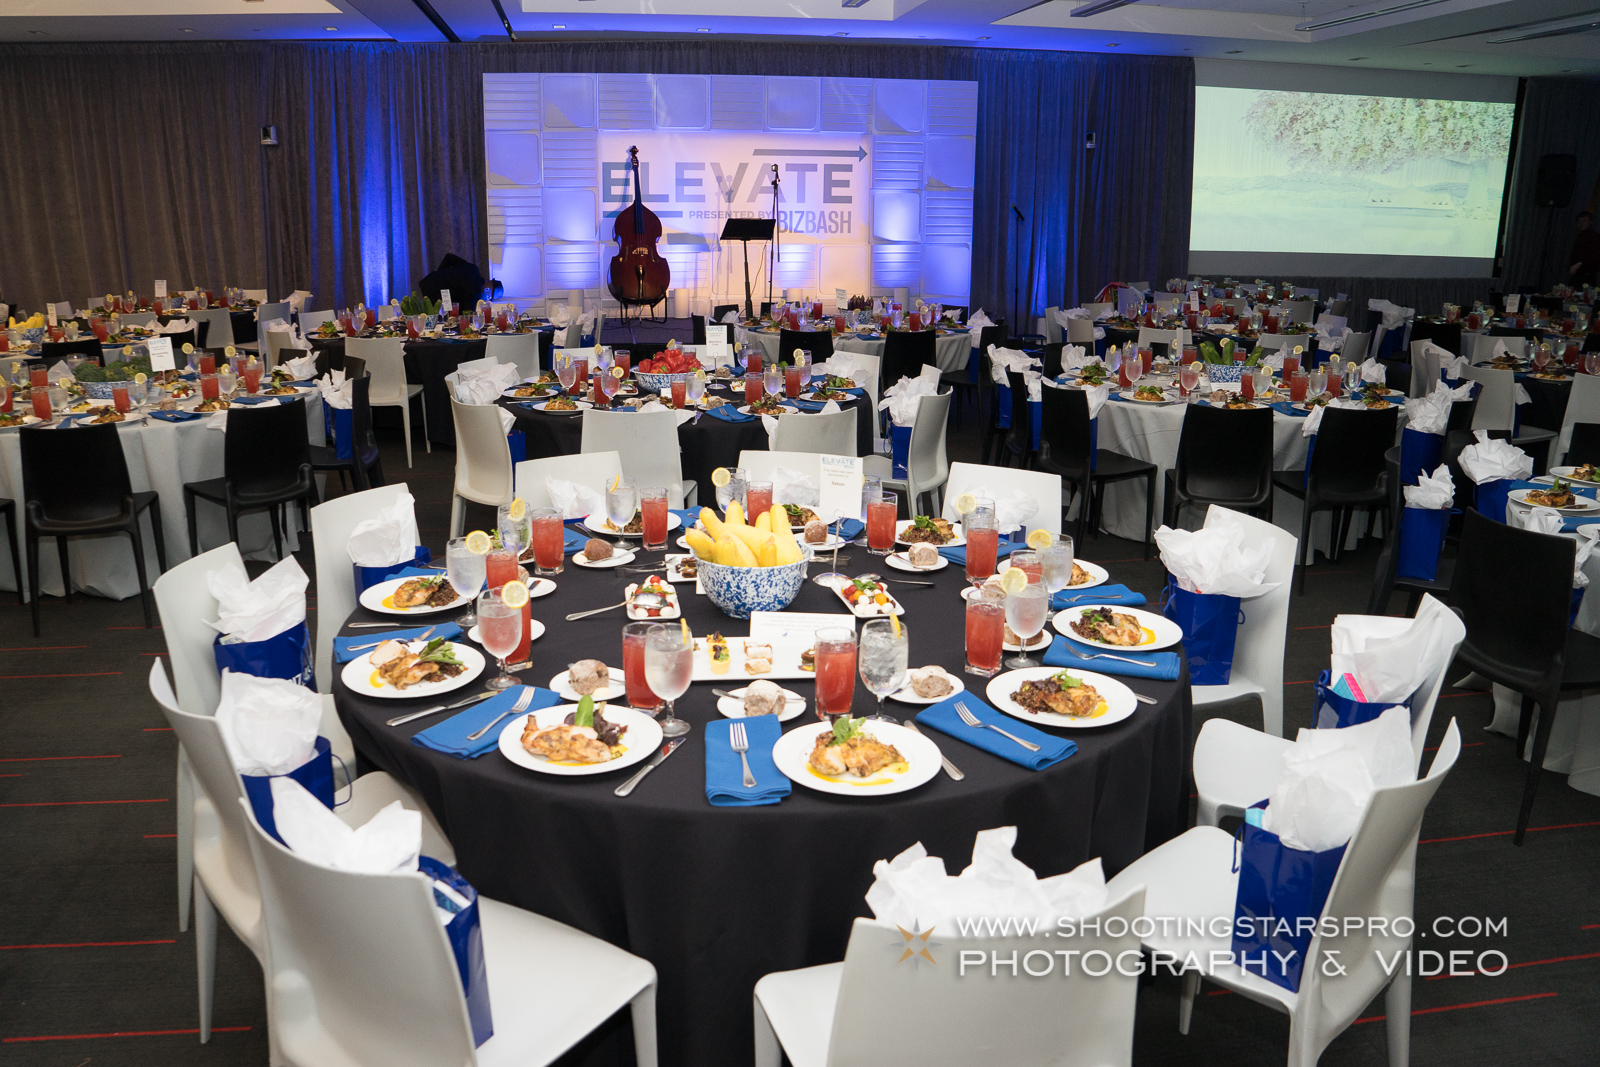 097_Bizbash_Elevate_Photo_By_Shooting_Stars_Pro.jpg